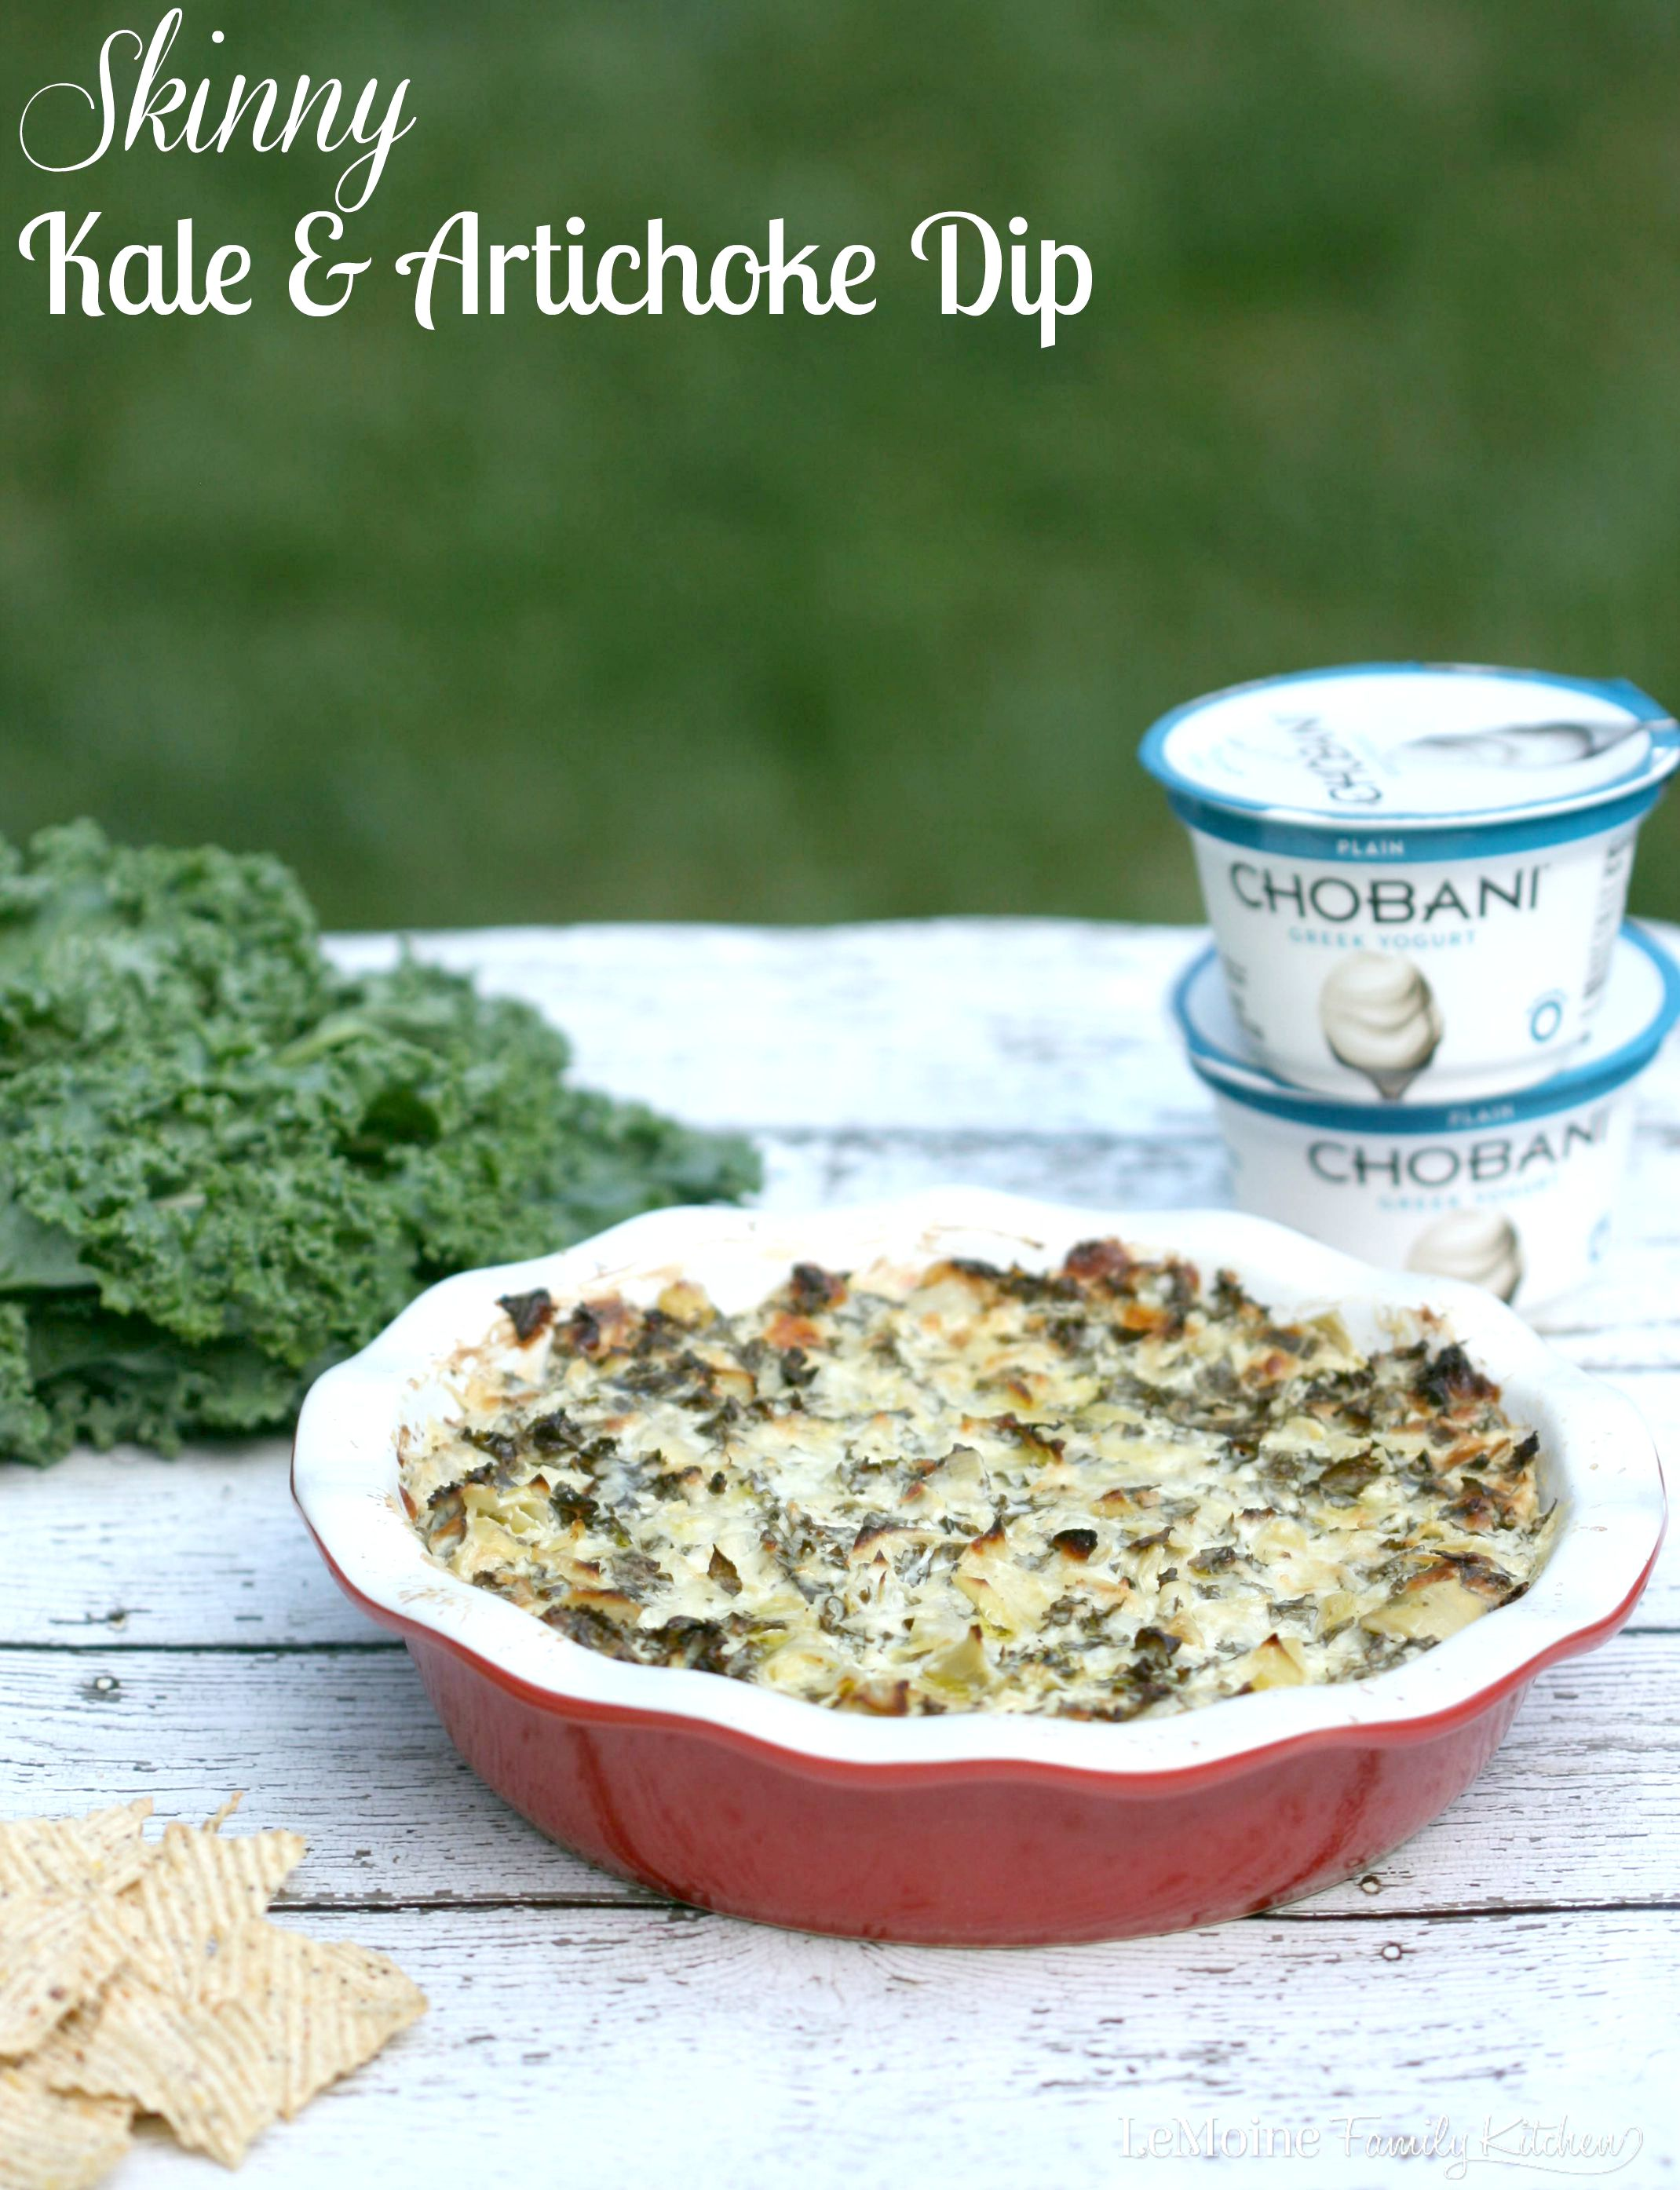 Skinny Kale & Artichoke Dip | LeMoine Family Kitchen. A lightened up version of a classic dip thanks to the use of Chobani Greek yogurt. Great flavor, less calories!